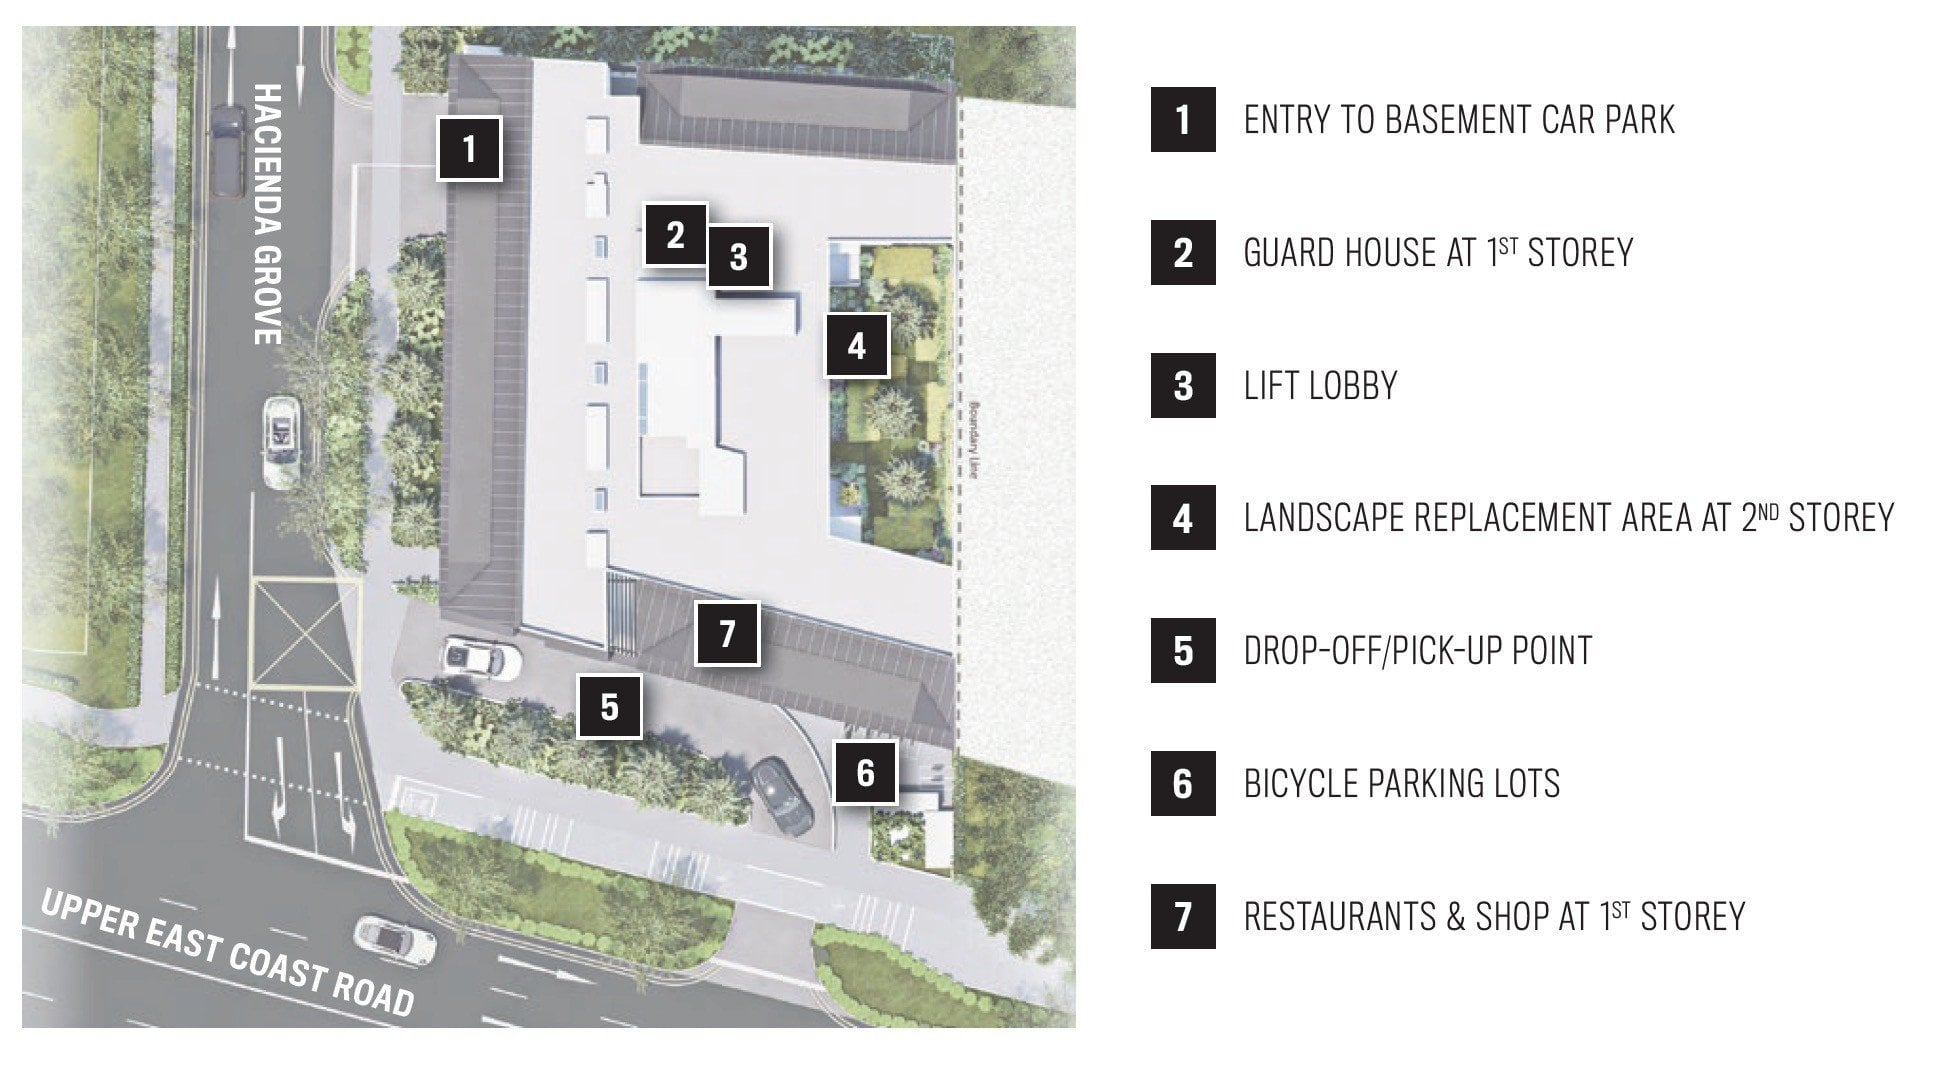 77 east coast site plan-1